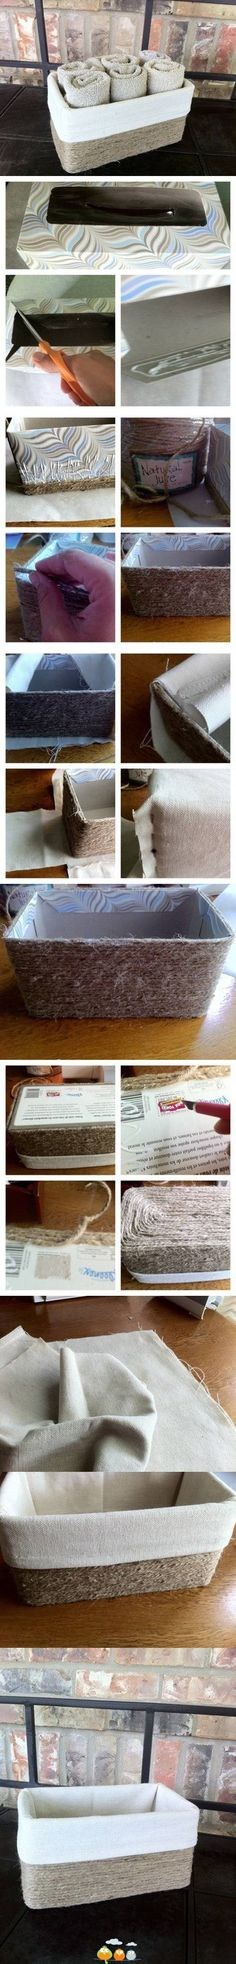 Paper basket and yarn. How To. Step by step.